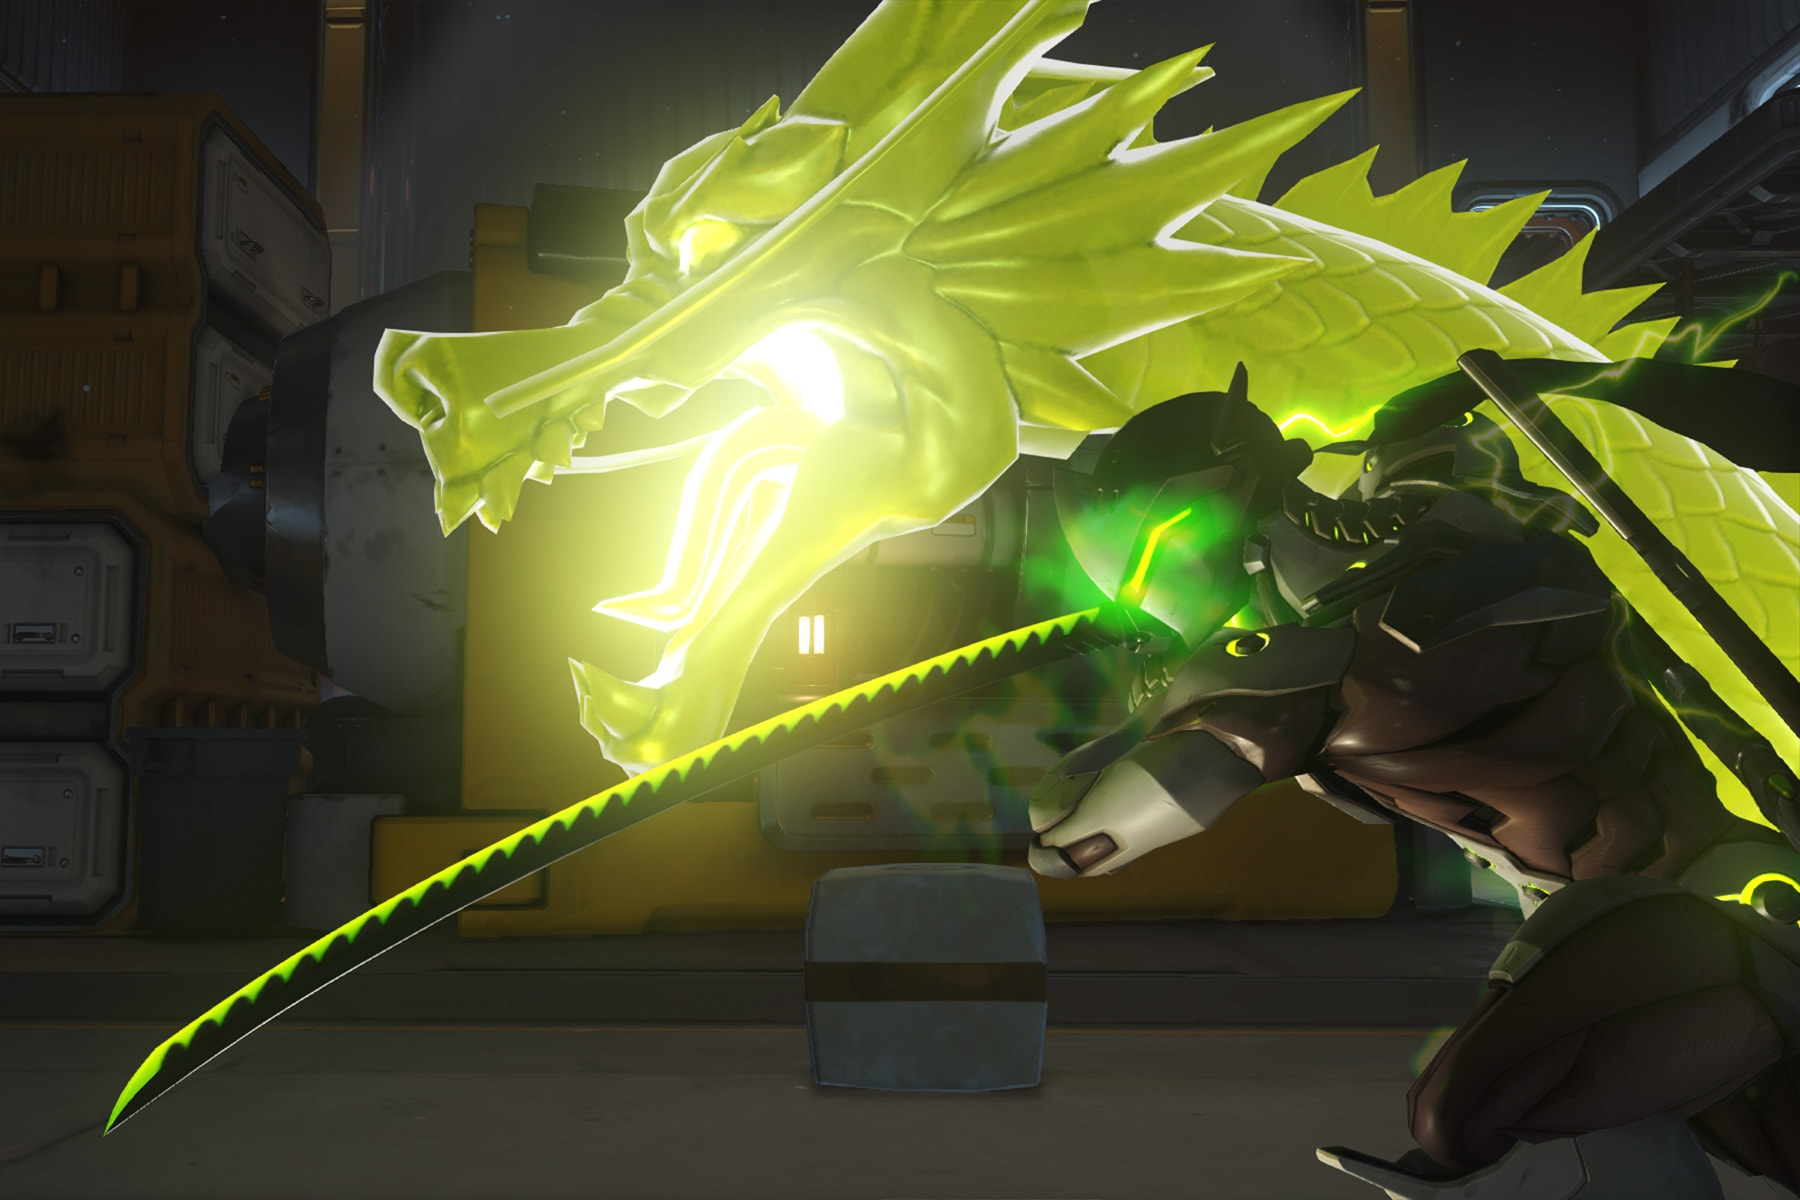 Screenshot from Overwatch featuring a yellow dragon